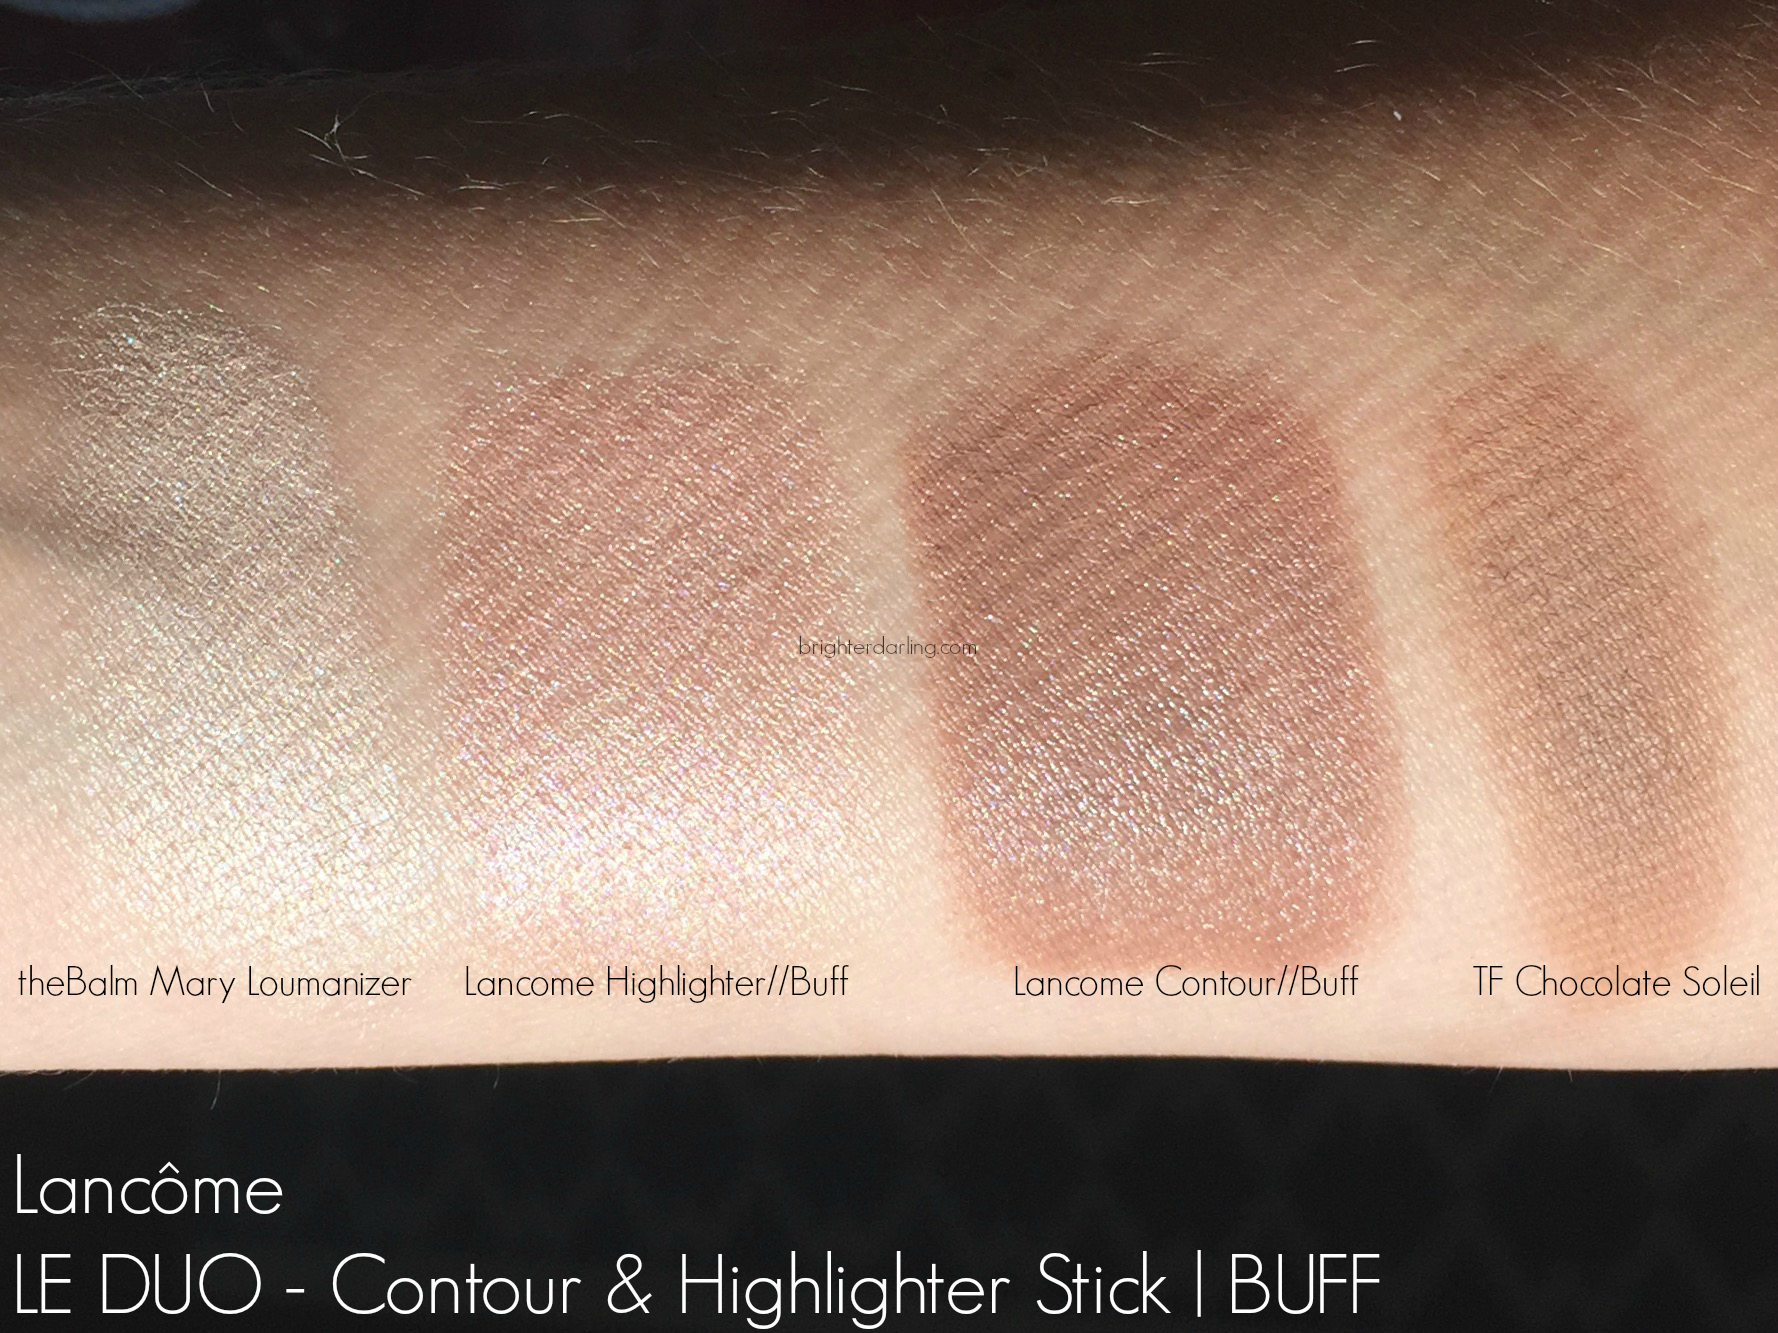 Lancome Le Duo Contour Highlighter Buff Swatches 2